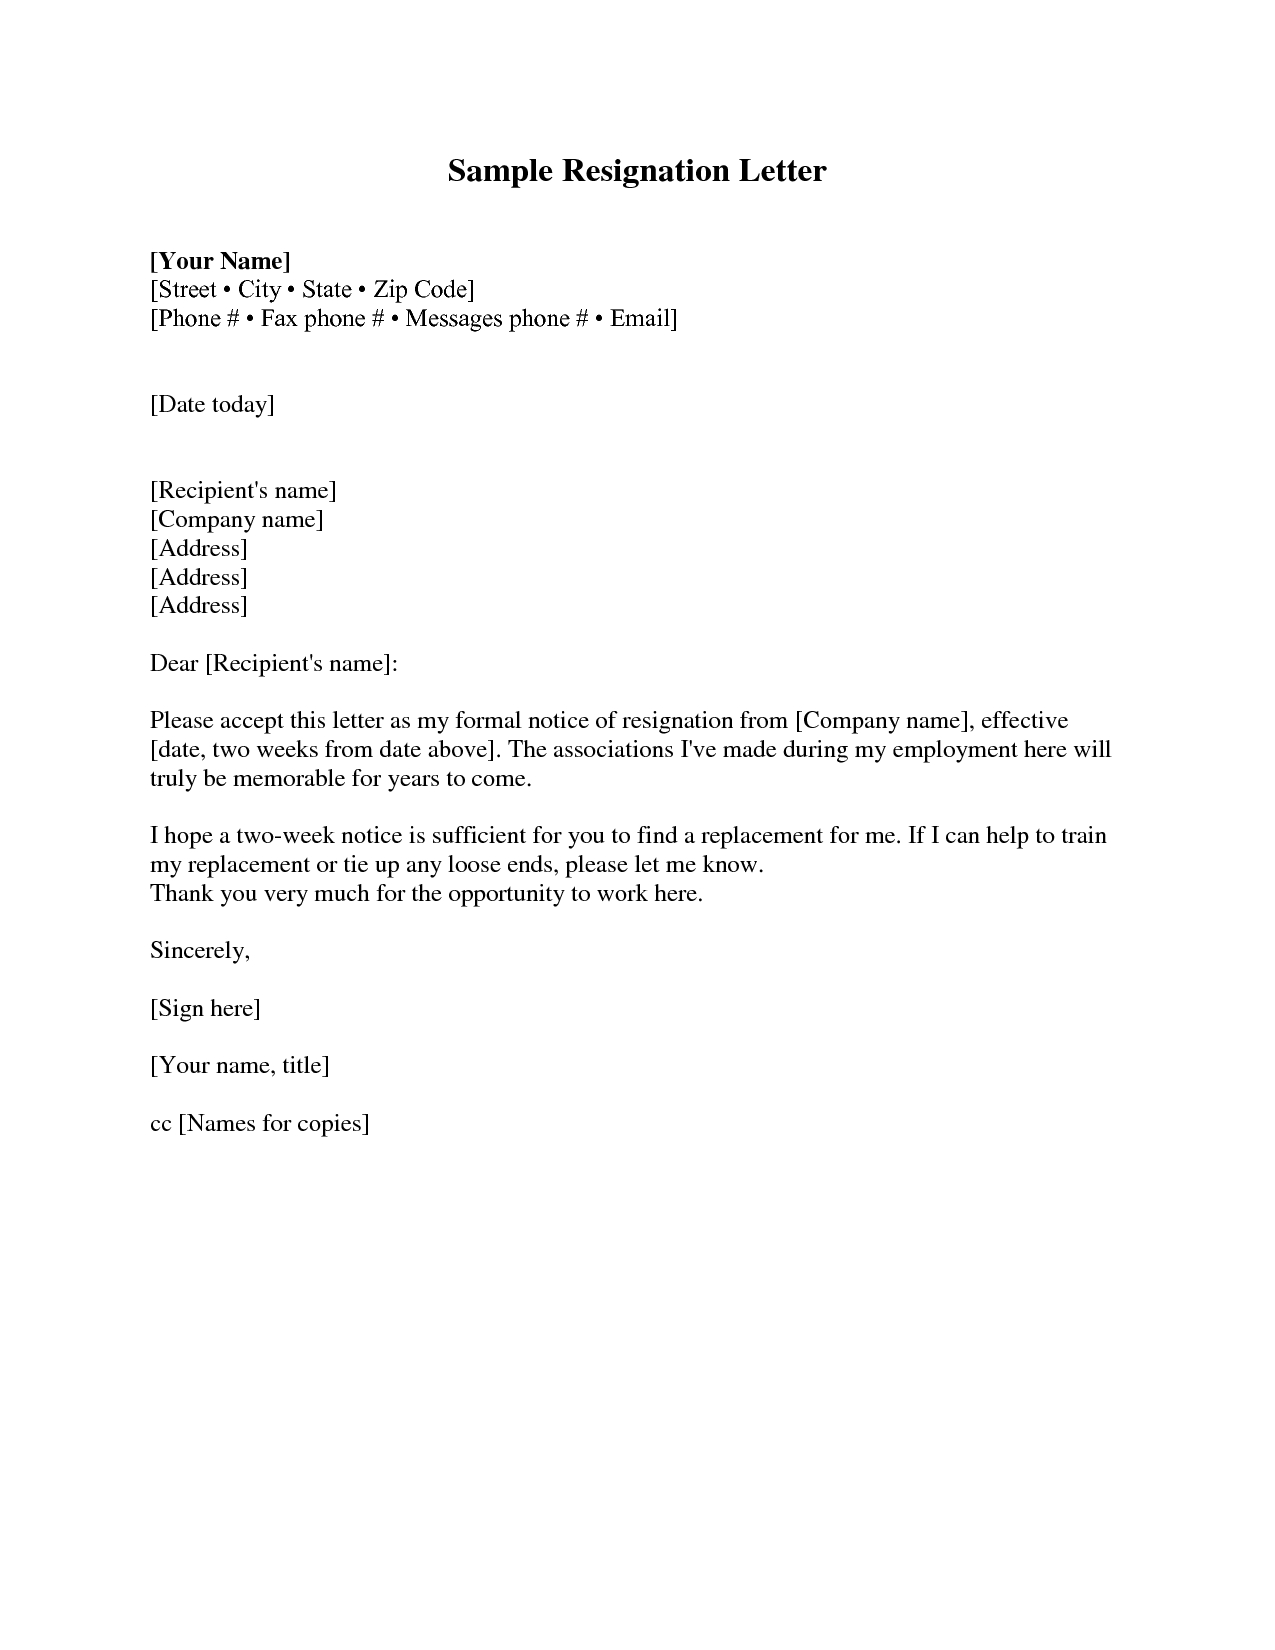 Resignation Letter Free Template Download - Resignation Letter Sample 2 Weeks Notice Free2img